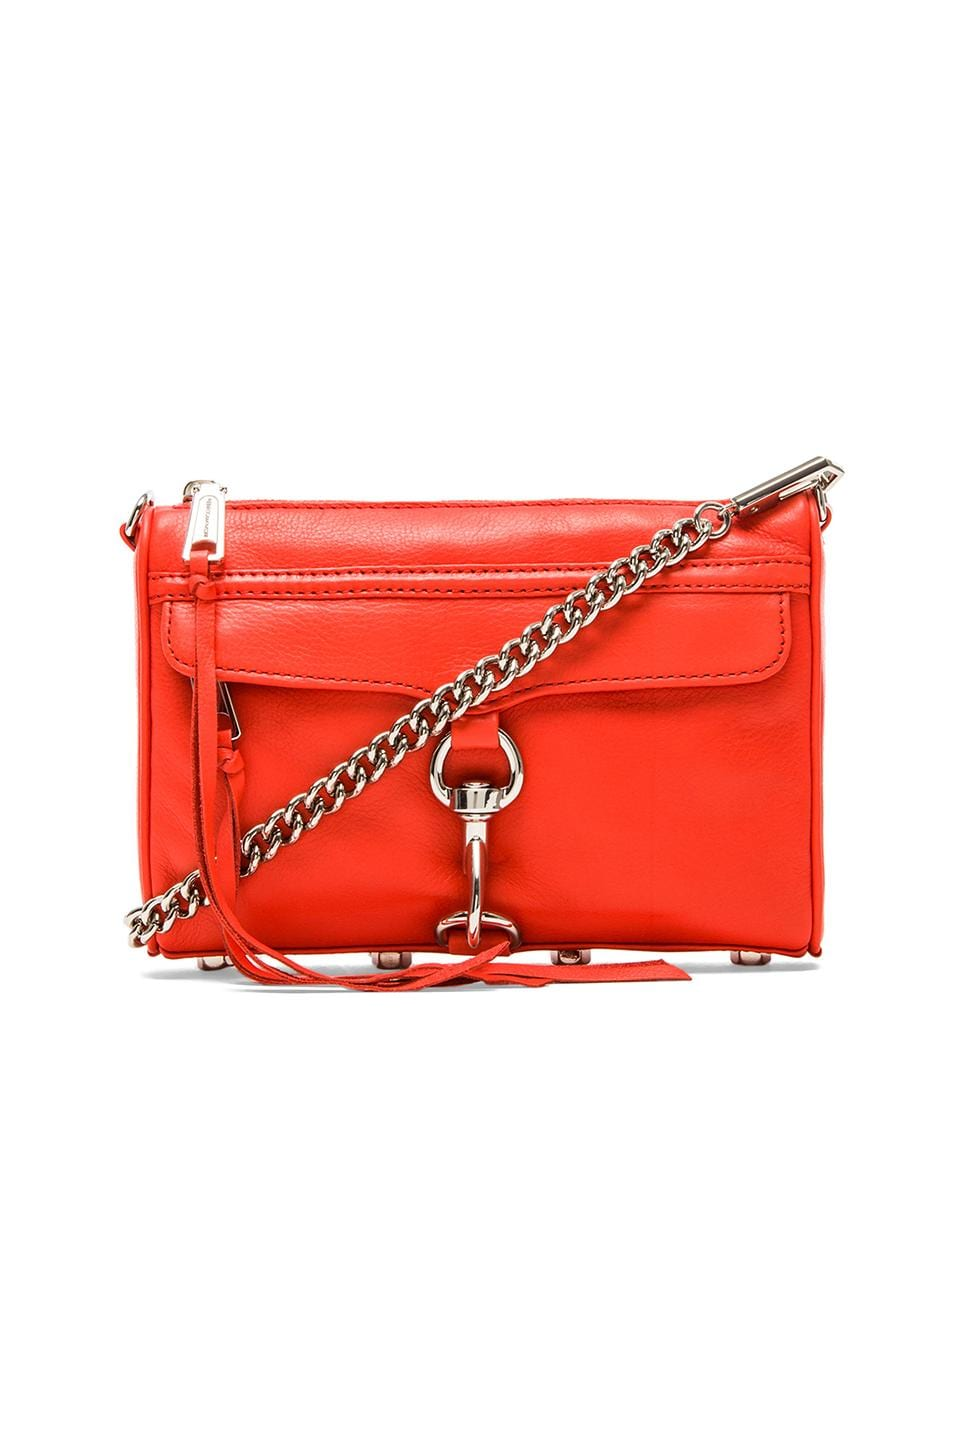 Rebecca Minkoff Mini MAC in Blood Orange